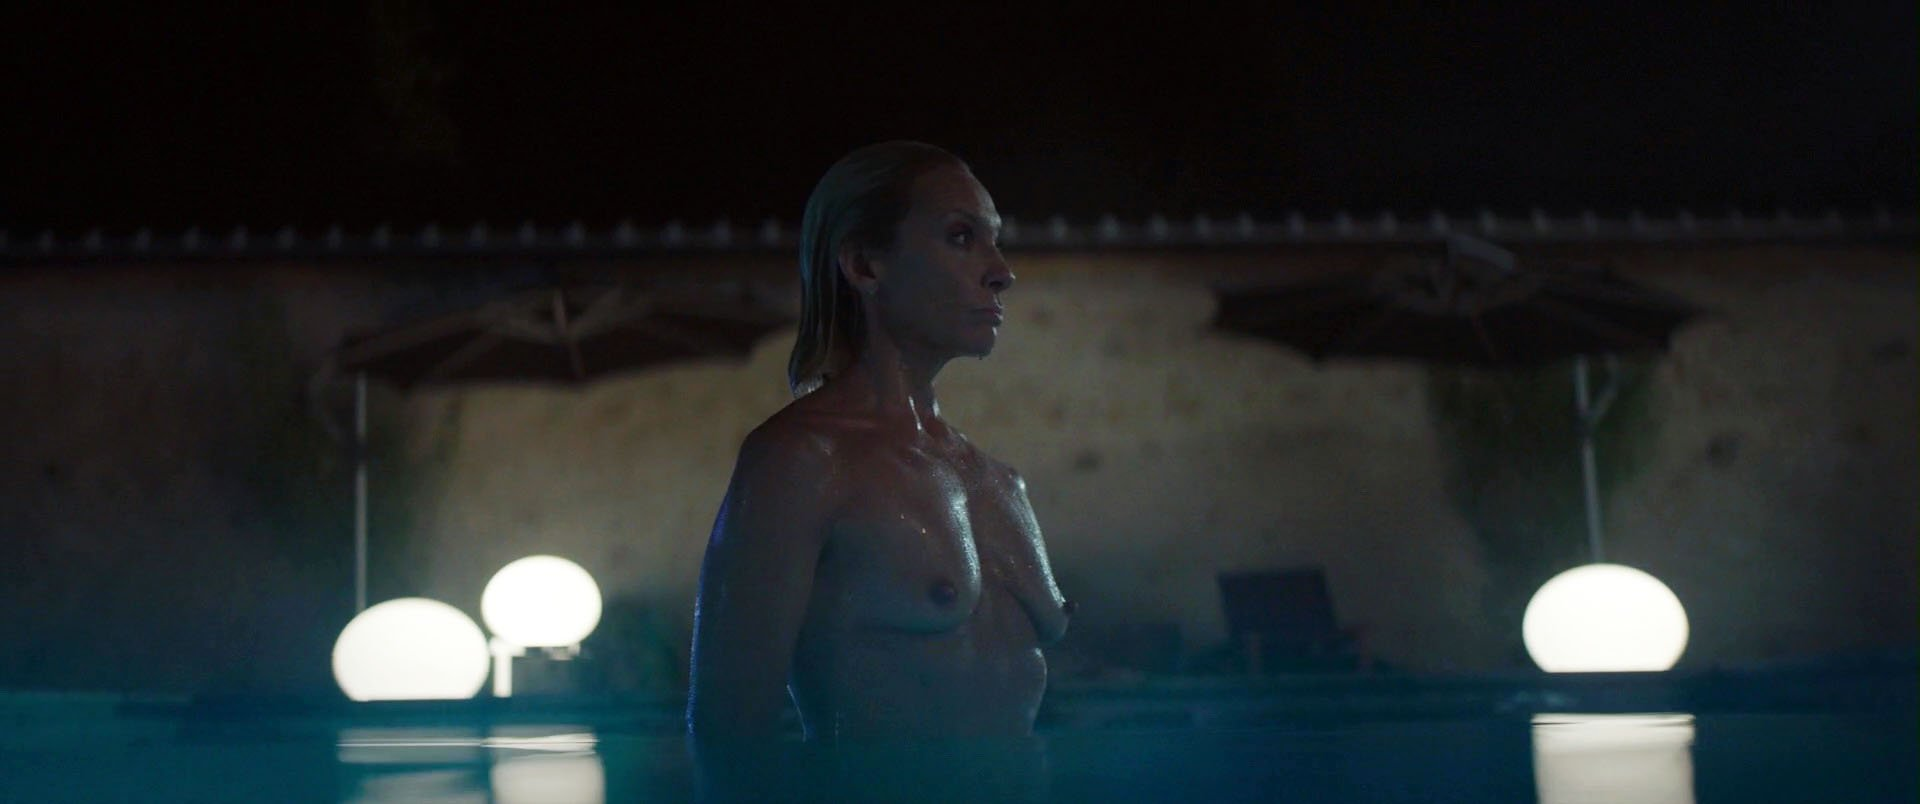 Toni Collette nude - Madame (2017)